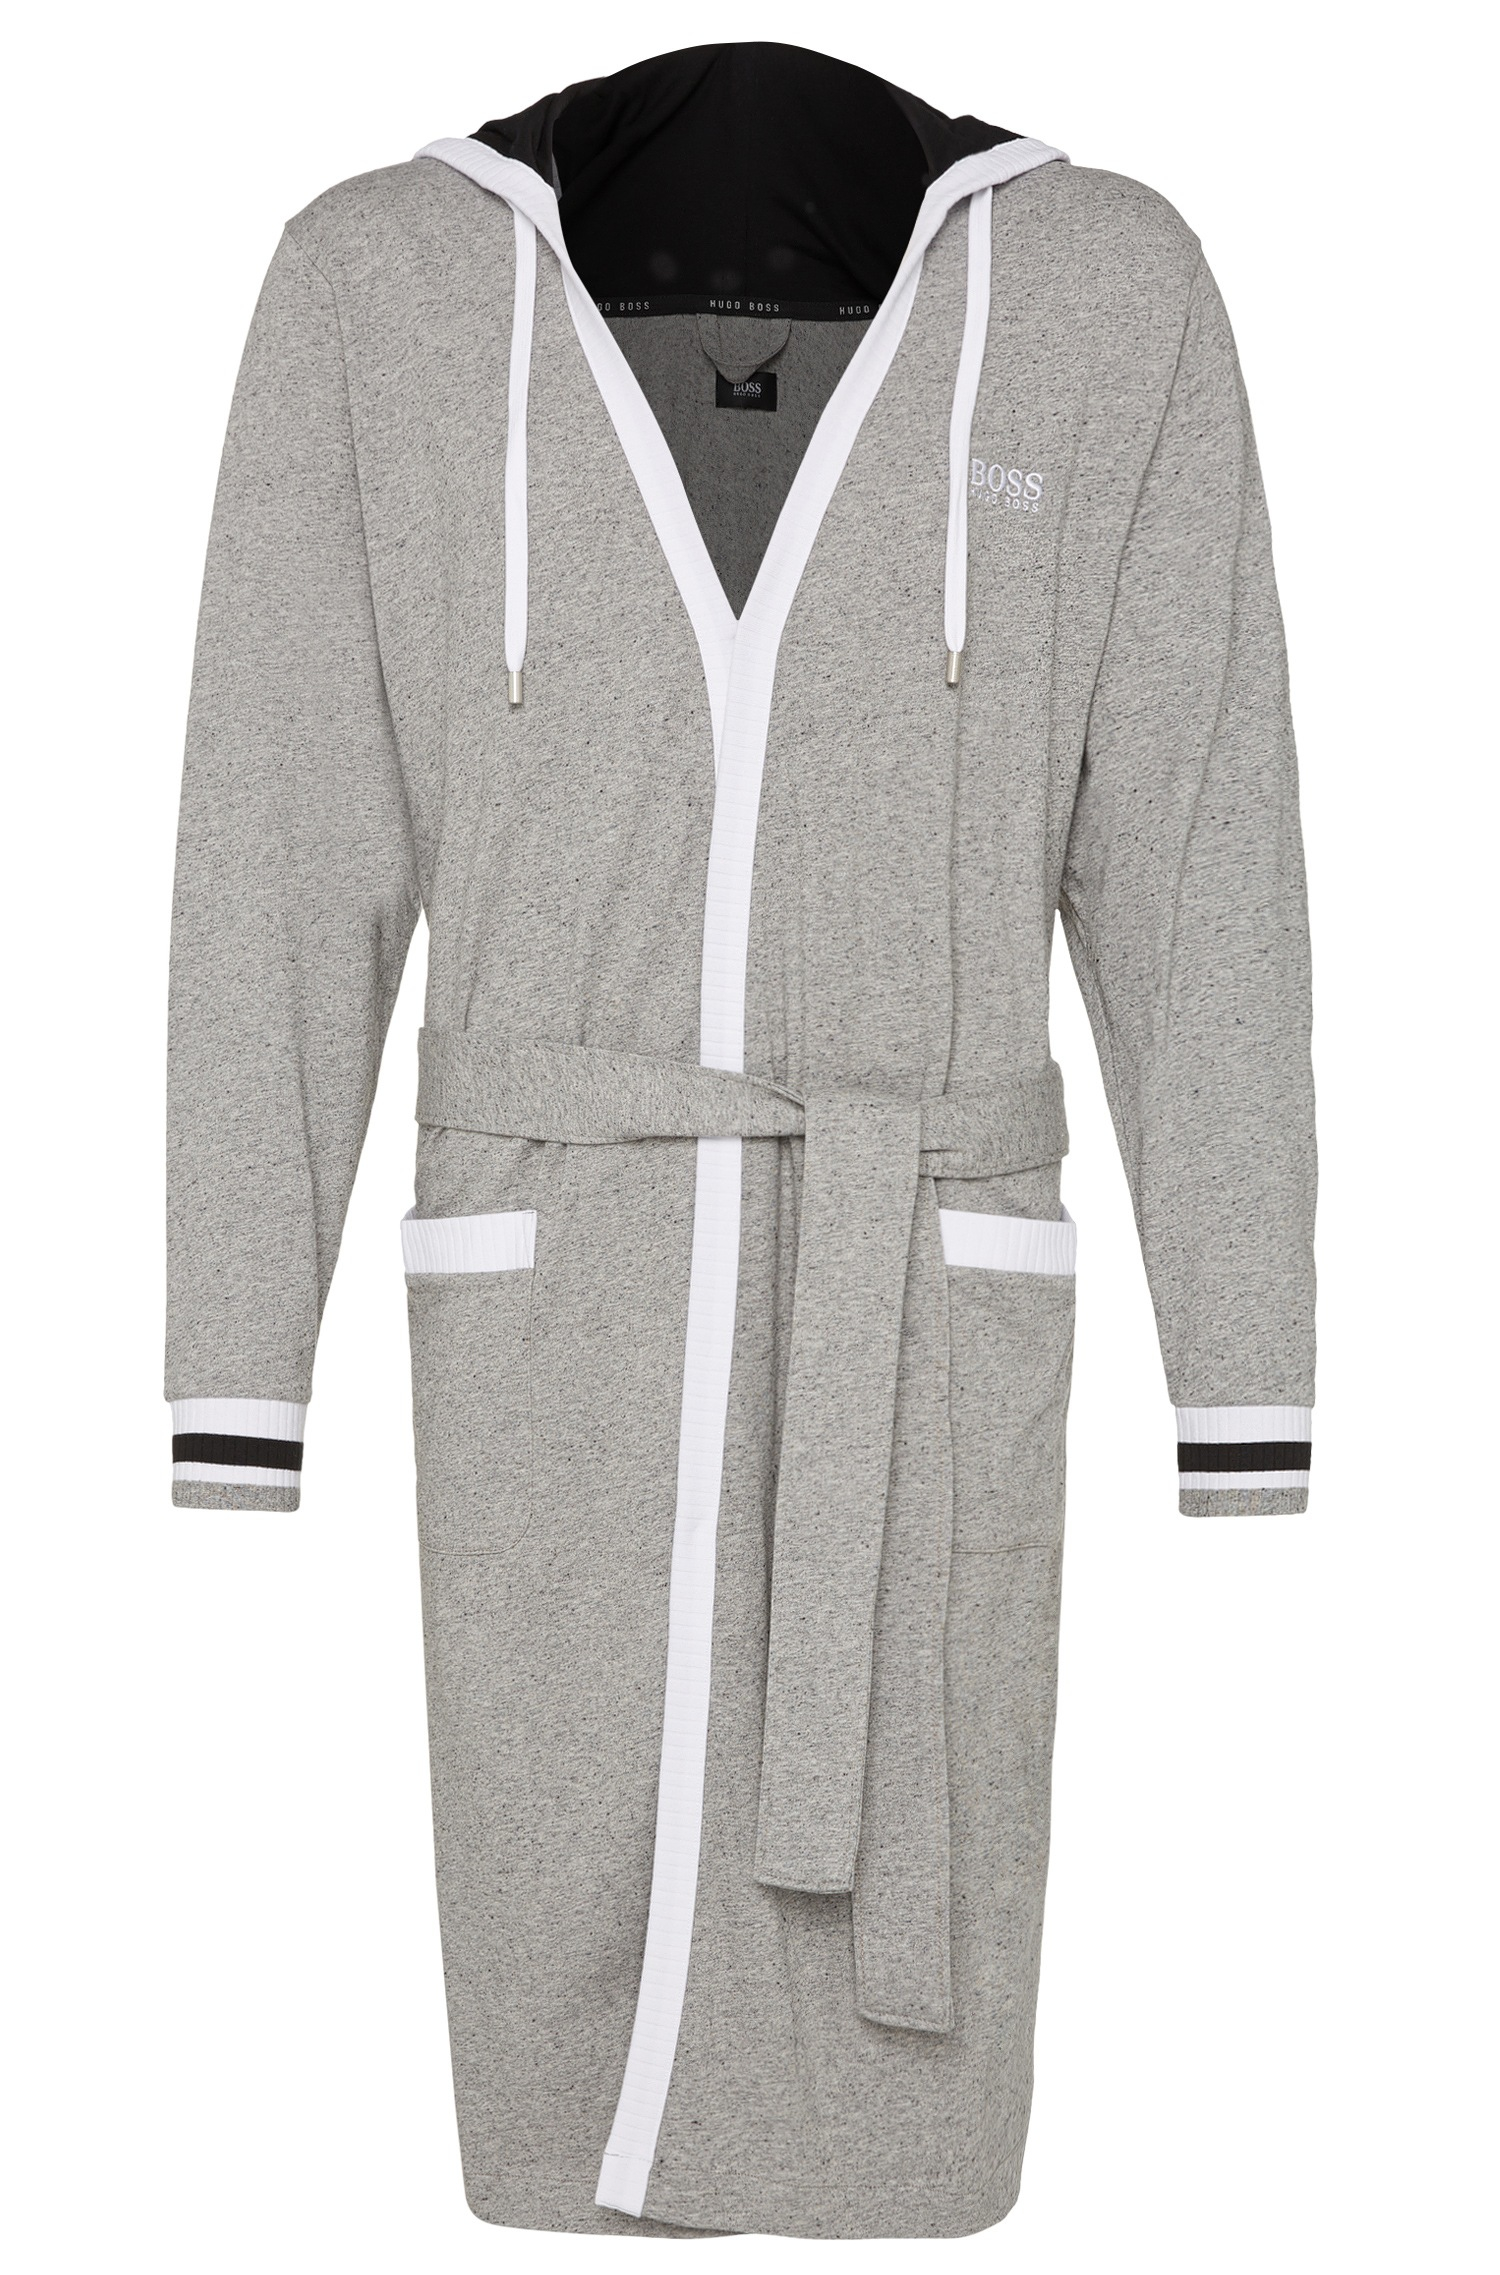 Pretty Hooded Dressing Gown Mens Gallery - Wedding and flowers ...